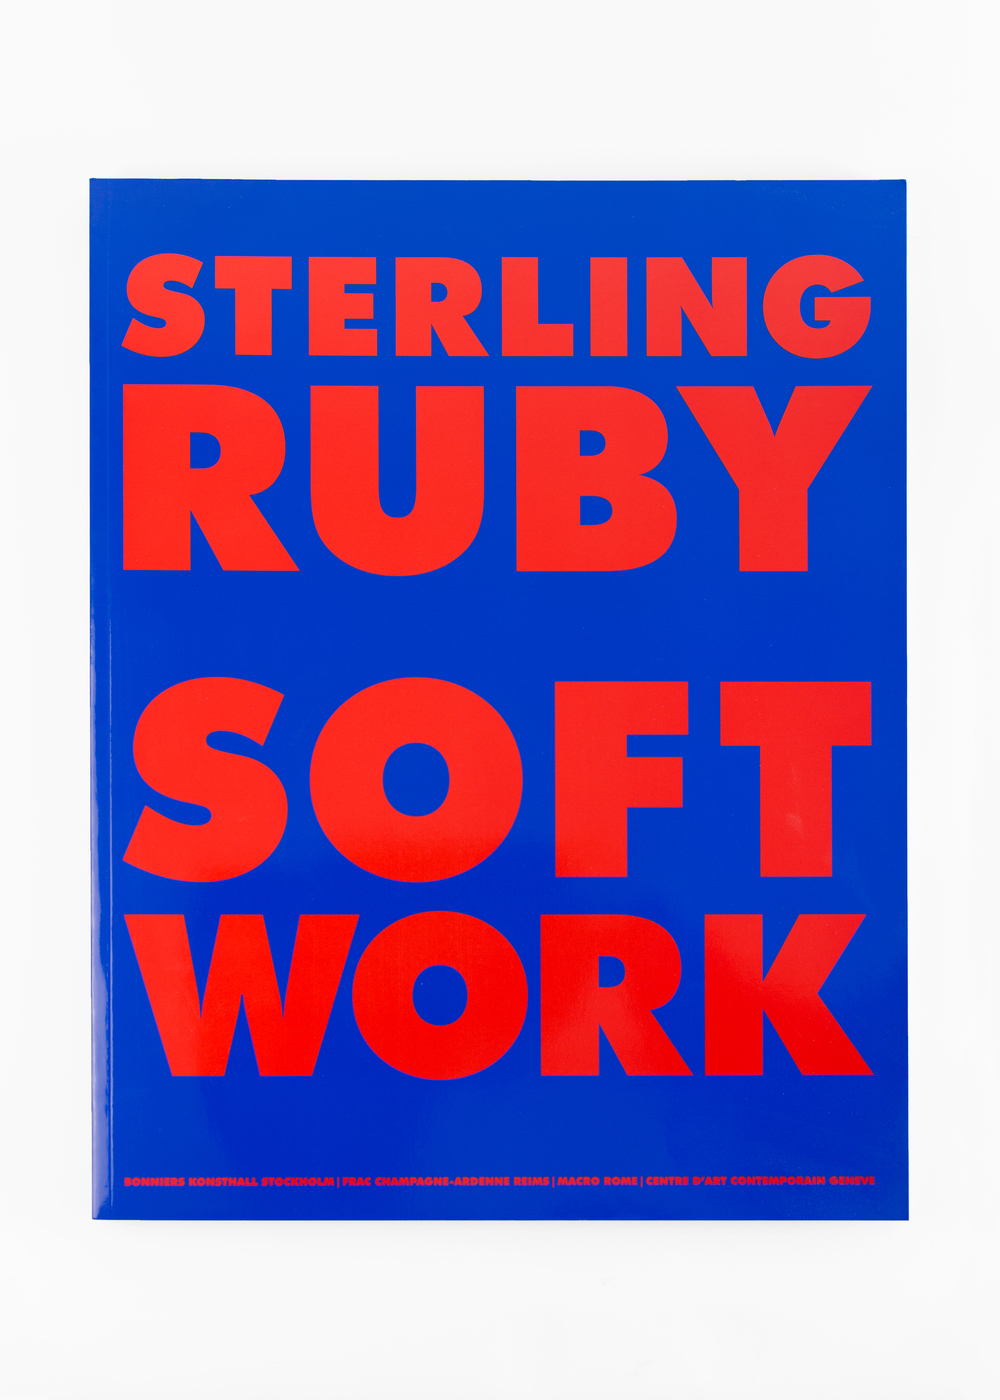 "Sterling Ruby - Softwork</br>150 pages 28 x 38 cm</br>Walther König 2014</br>€50 <a href=""https://www.paypal.com/cgi-bin/webscr?cmd=_s-xclick&hosted_button_id=ZKBGAAETSQJUL"">Add to Cart</a>"